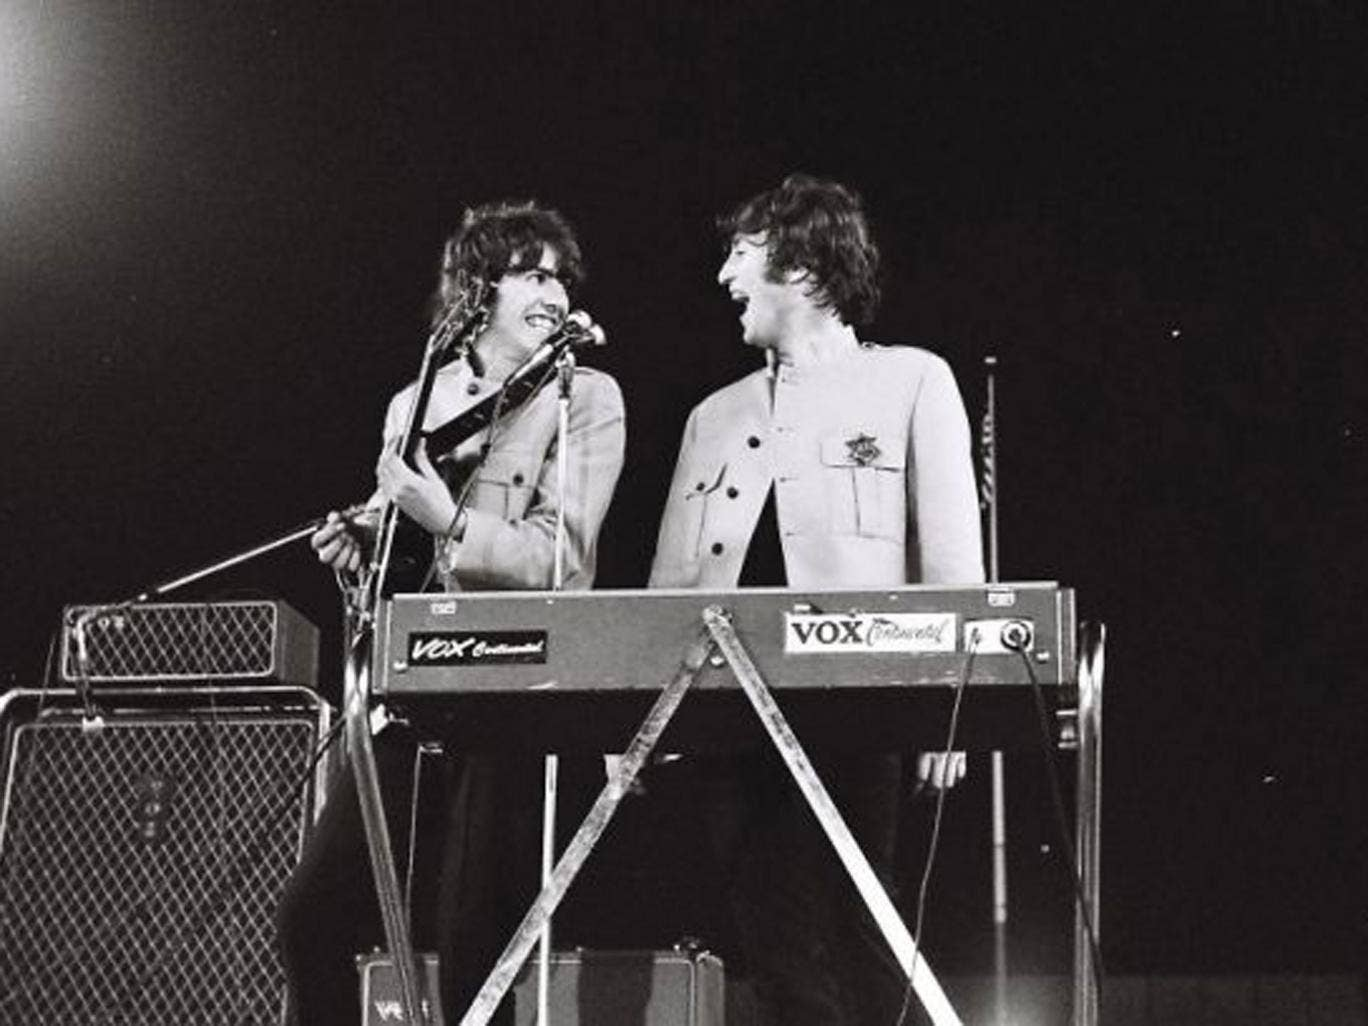 Handout photo issued by Omega Auctions of George Harrison (left) and John Lennon during The Beatles iconic Shea Stadium performance in August 1965 in New York